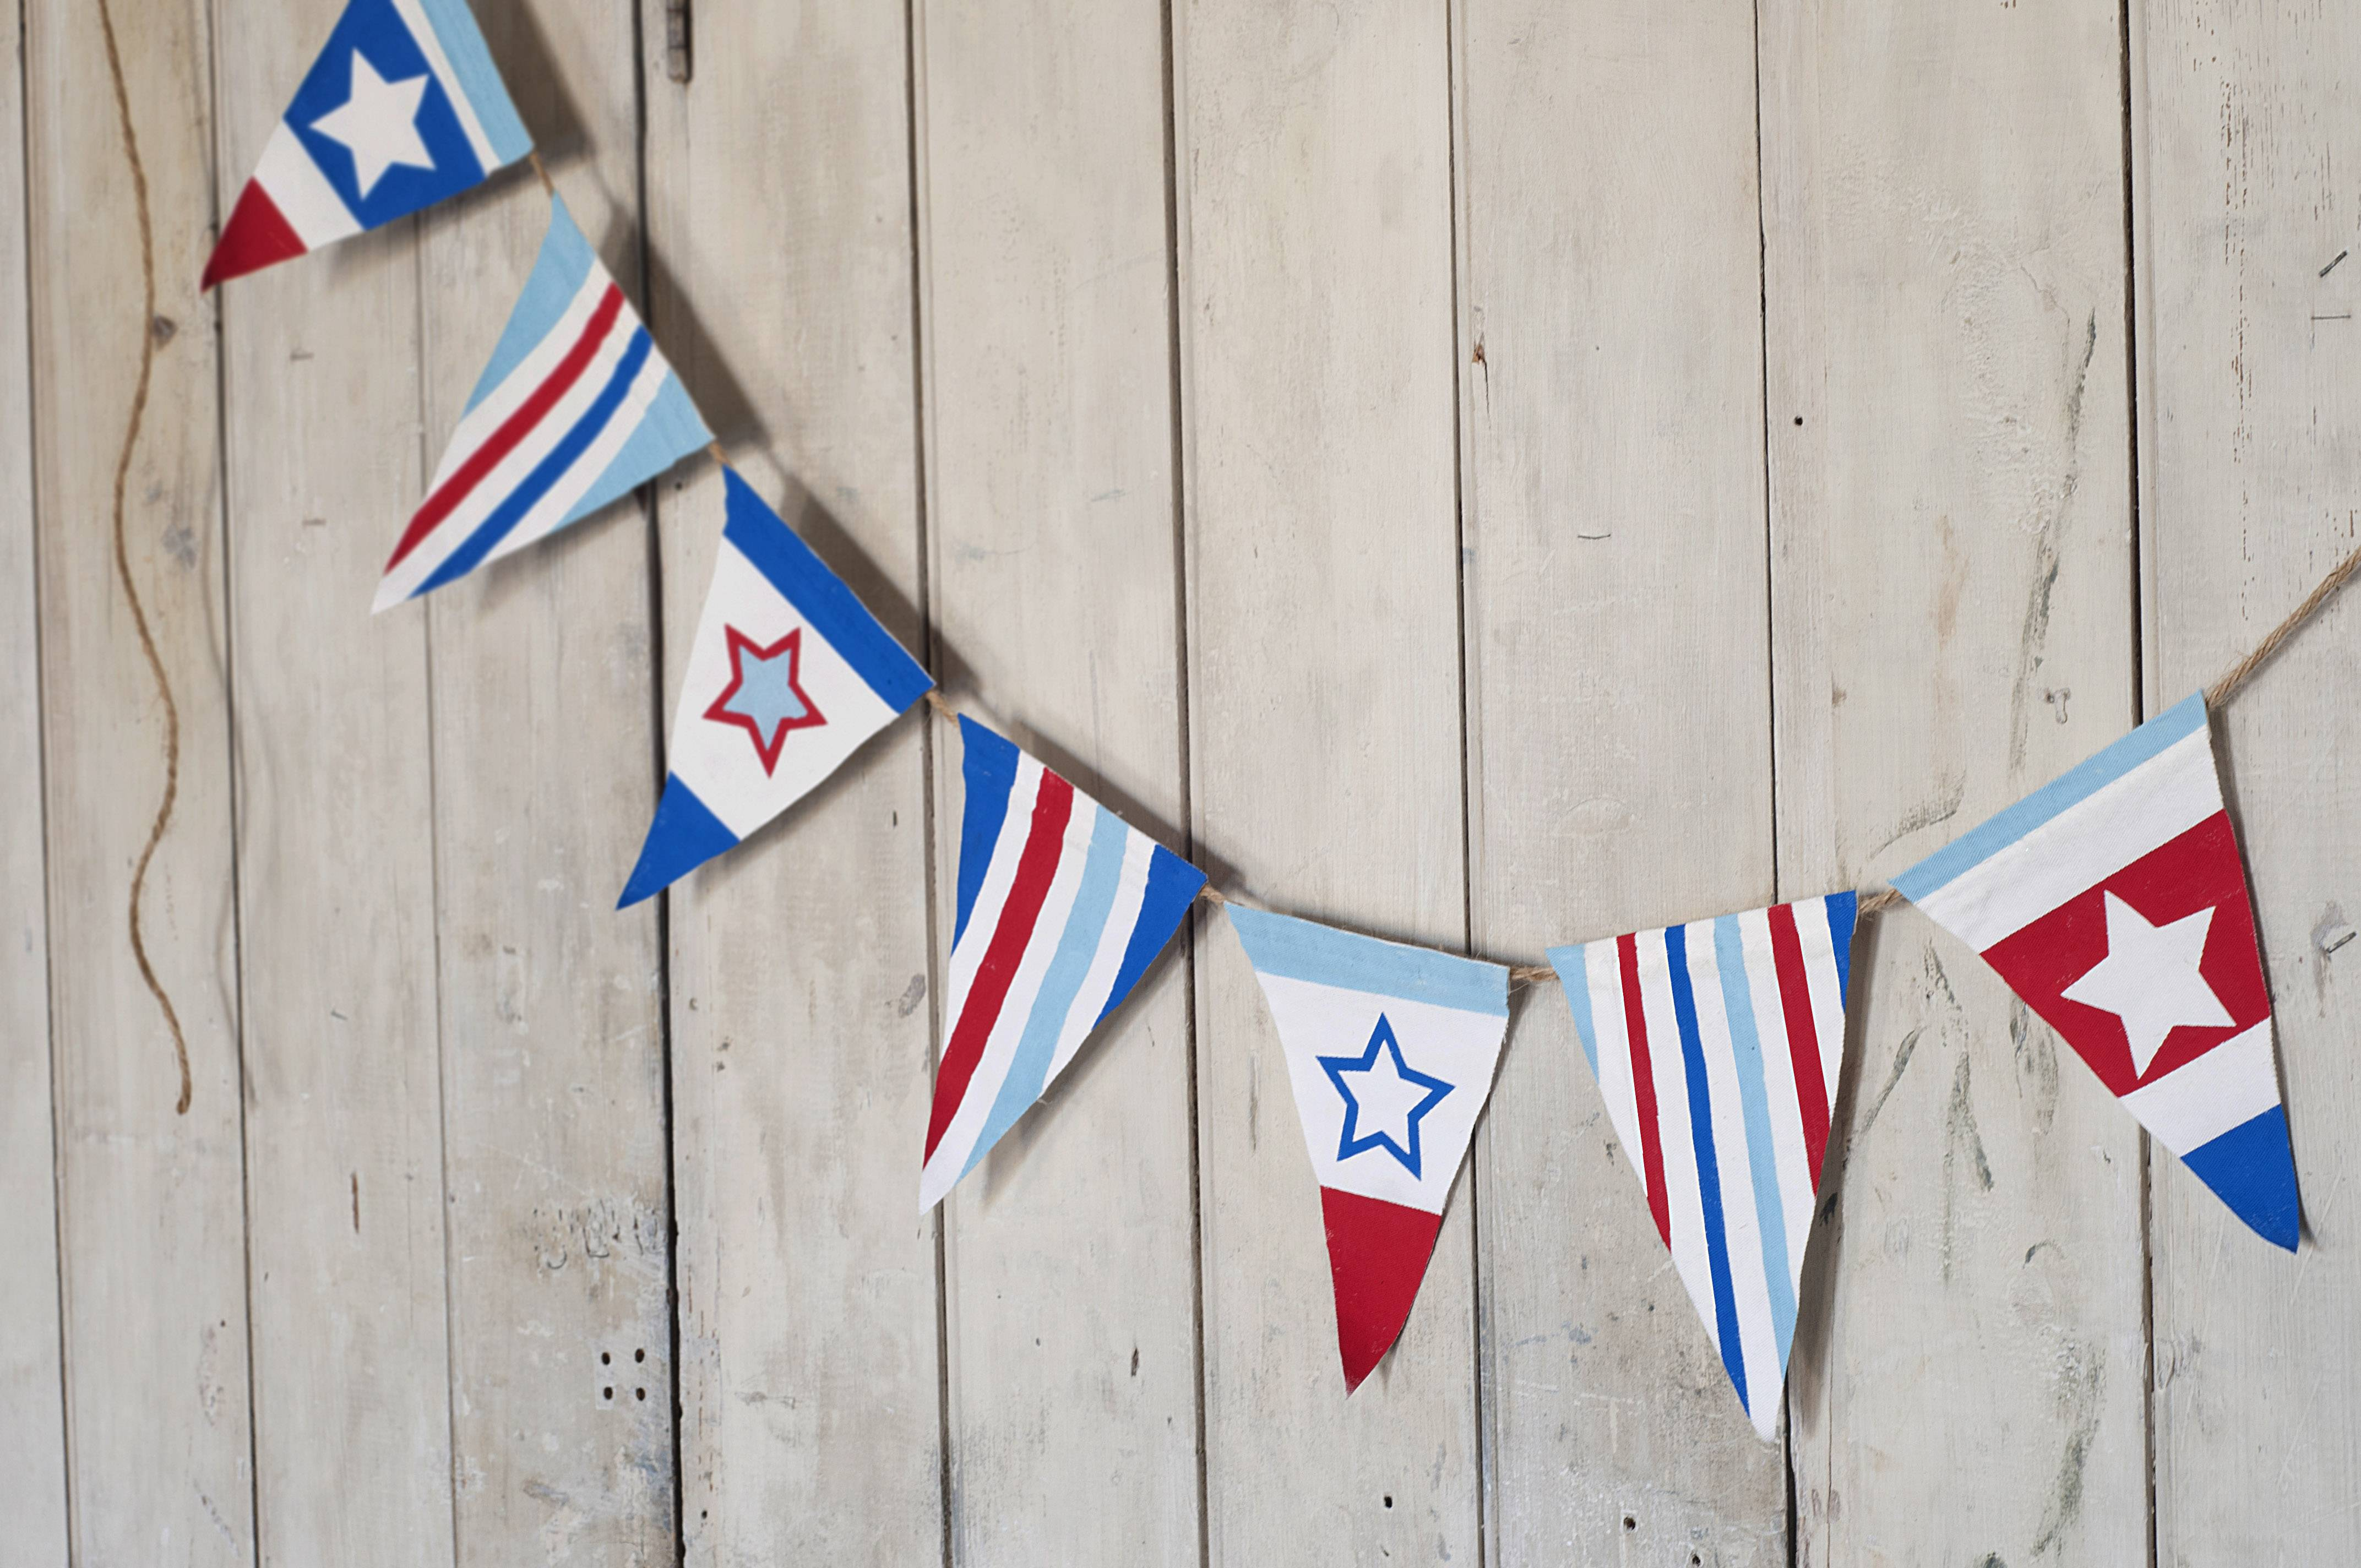 Stars and Stripes Bunting can be a fun craft for kids to make for Independence Day. The essential supplies include fabric or paper, freezer paper and acrylic paint.